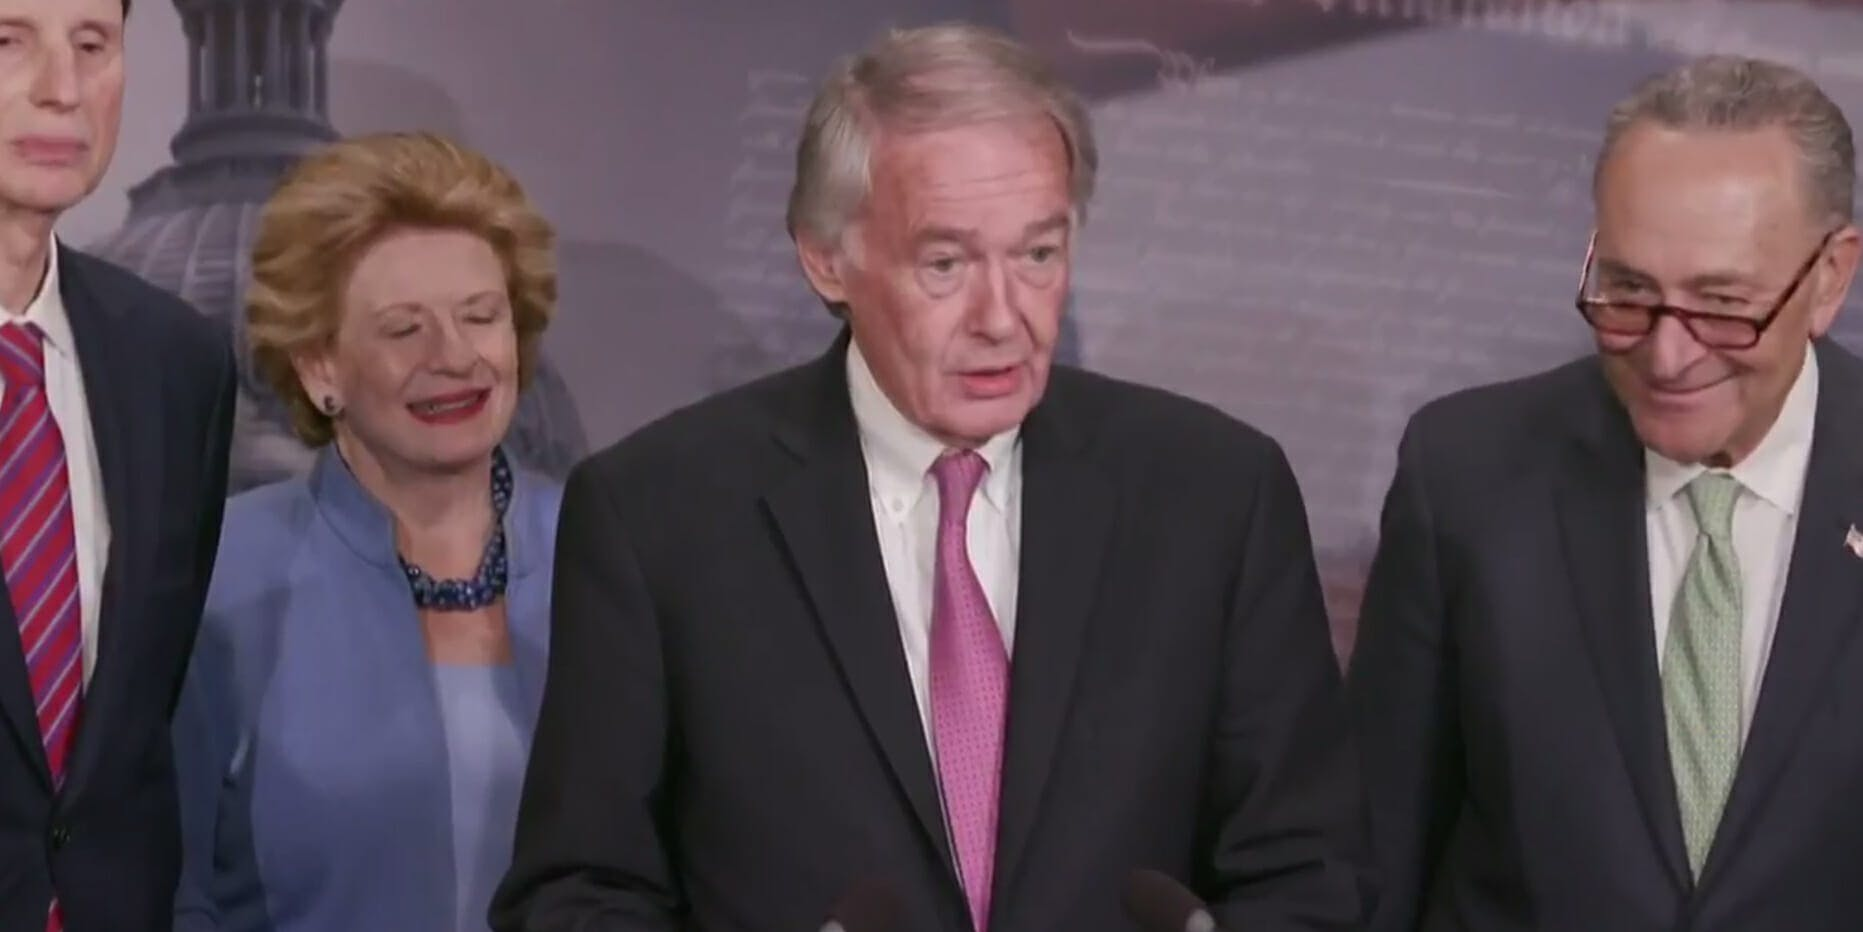 Democratic lawmakers took the first major step in their efforts to save net neutrality on Wednesday afternoon when they announced that they have filed a discharge petition as part of the Congressional Review Act (CRA), paving the way for a full vote on the Senate floor.